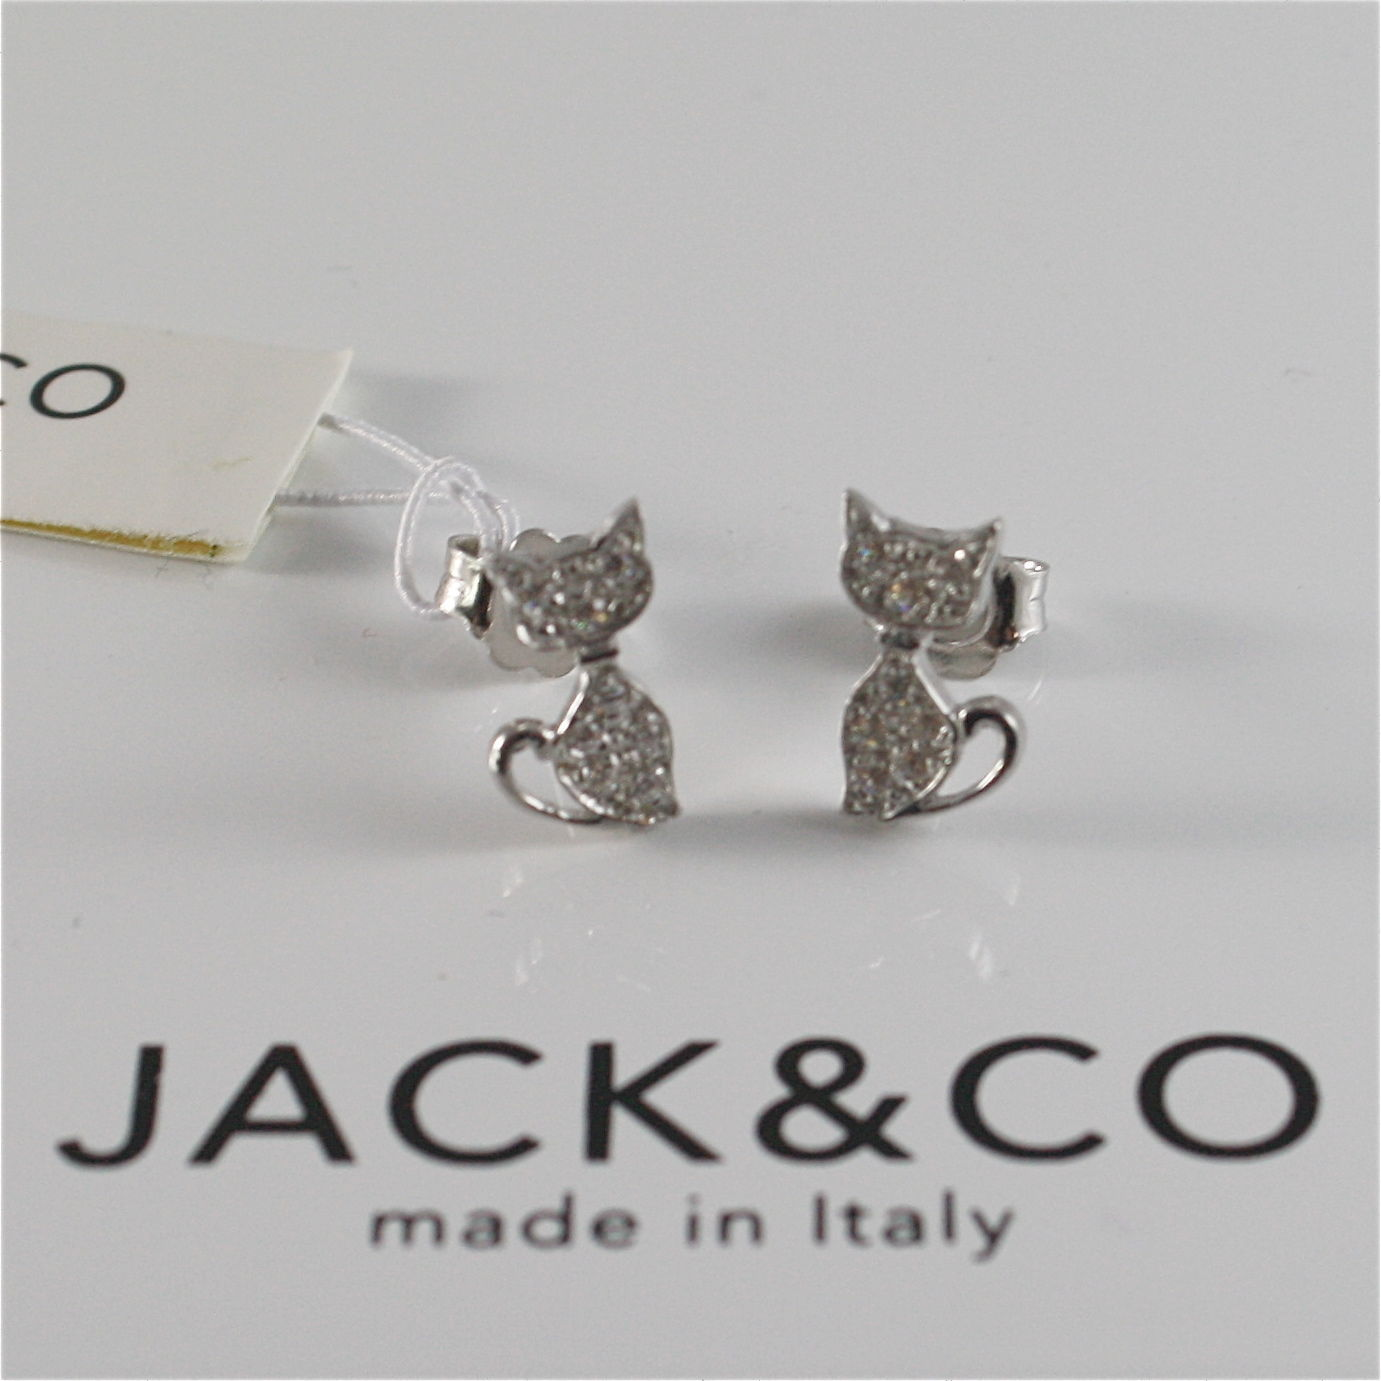 925 RHODIUM SILVER JACK&CO EARRINGS WITH KITTY CAT CUBIC ZIRCONIA MADE IN ITALY